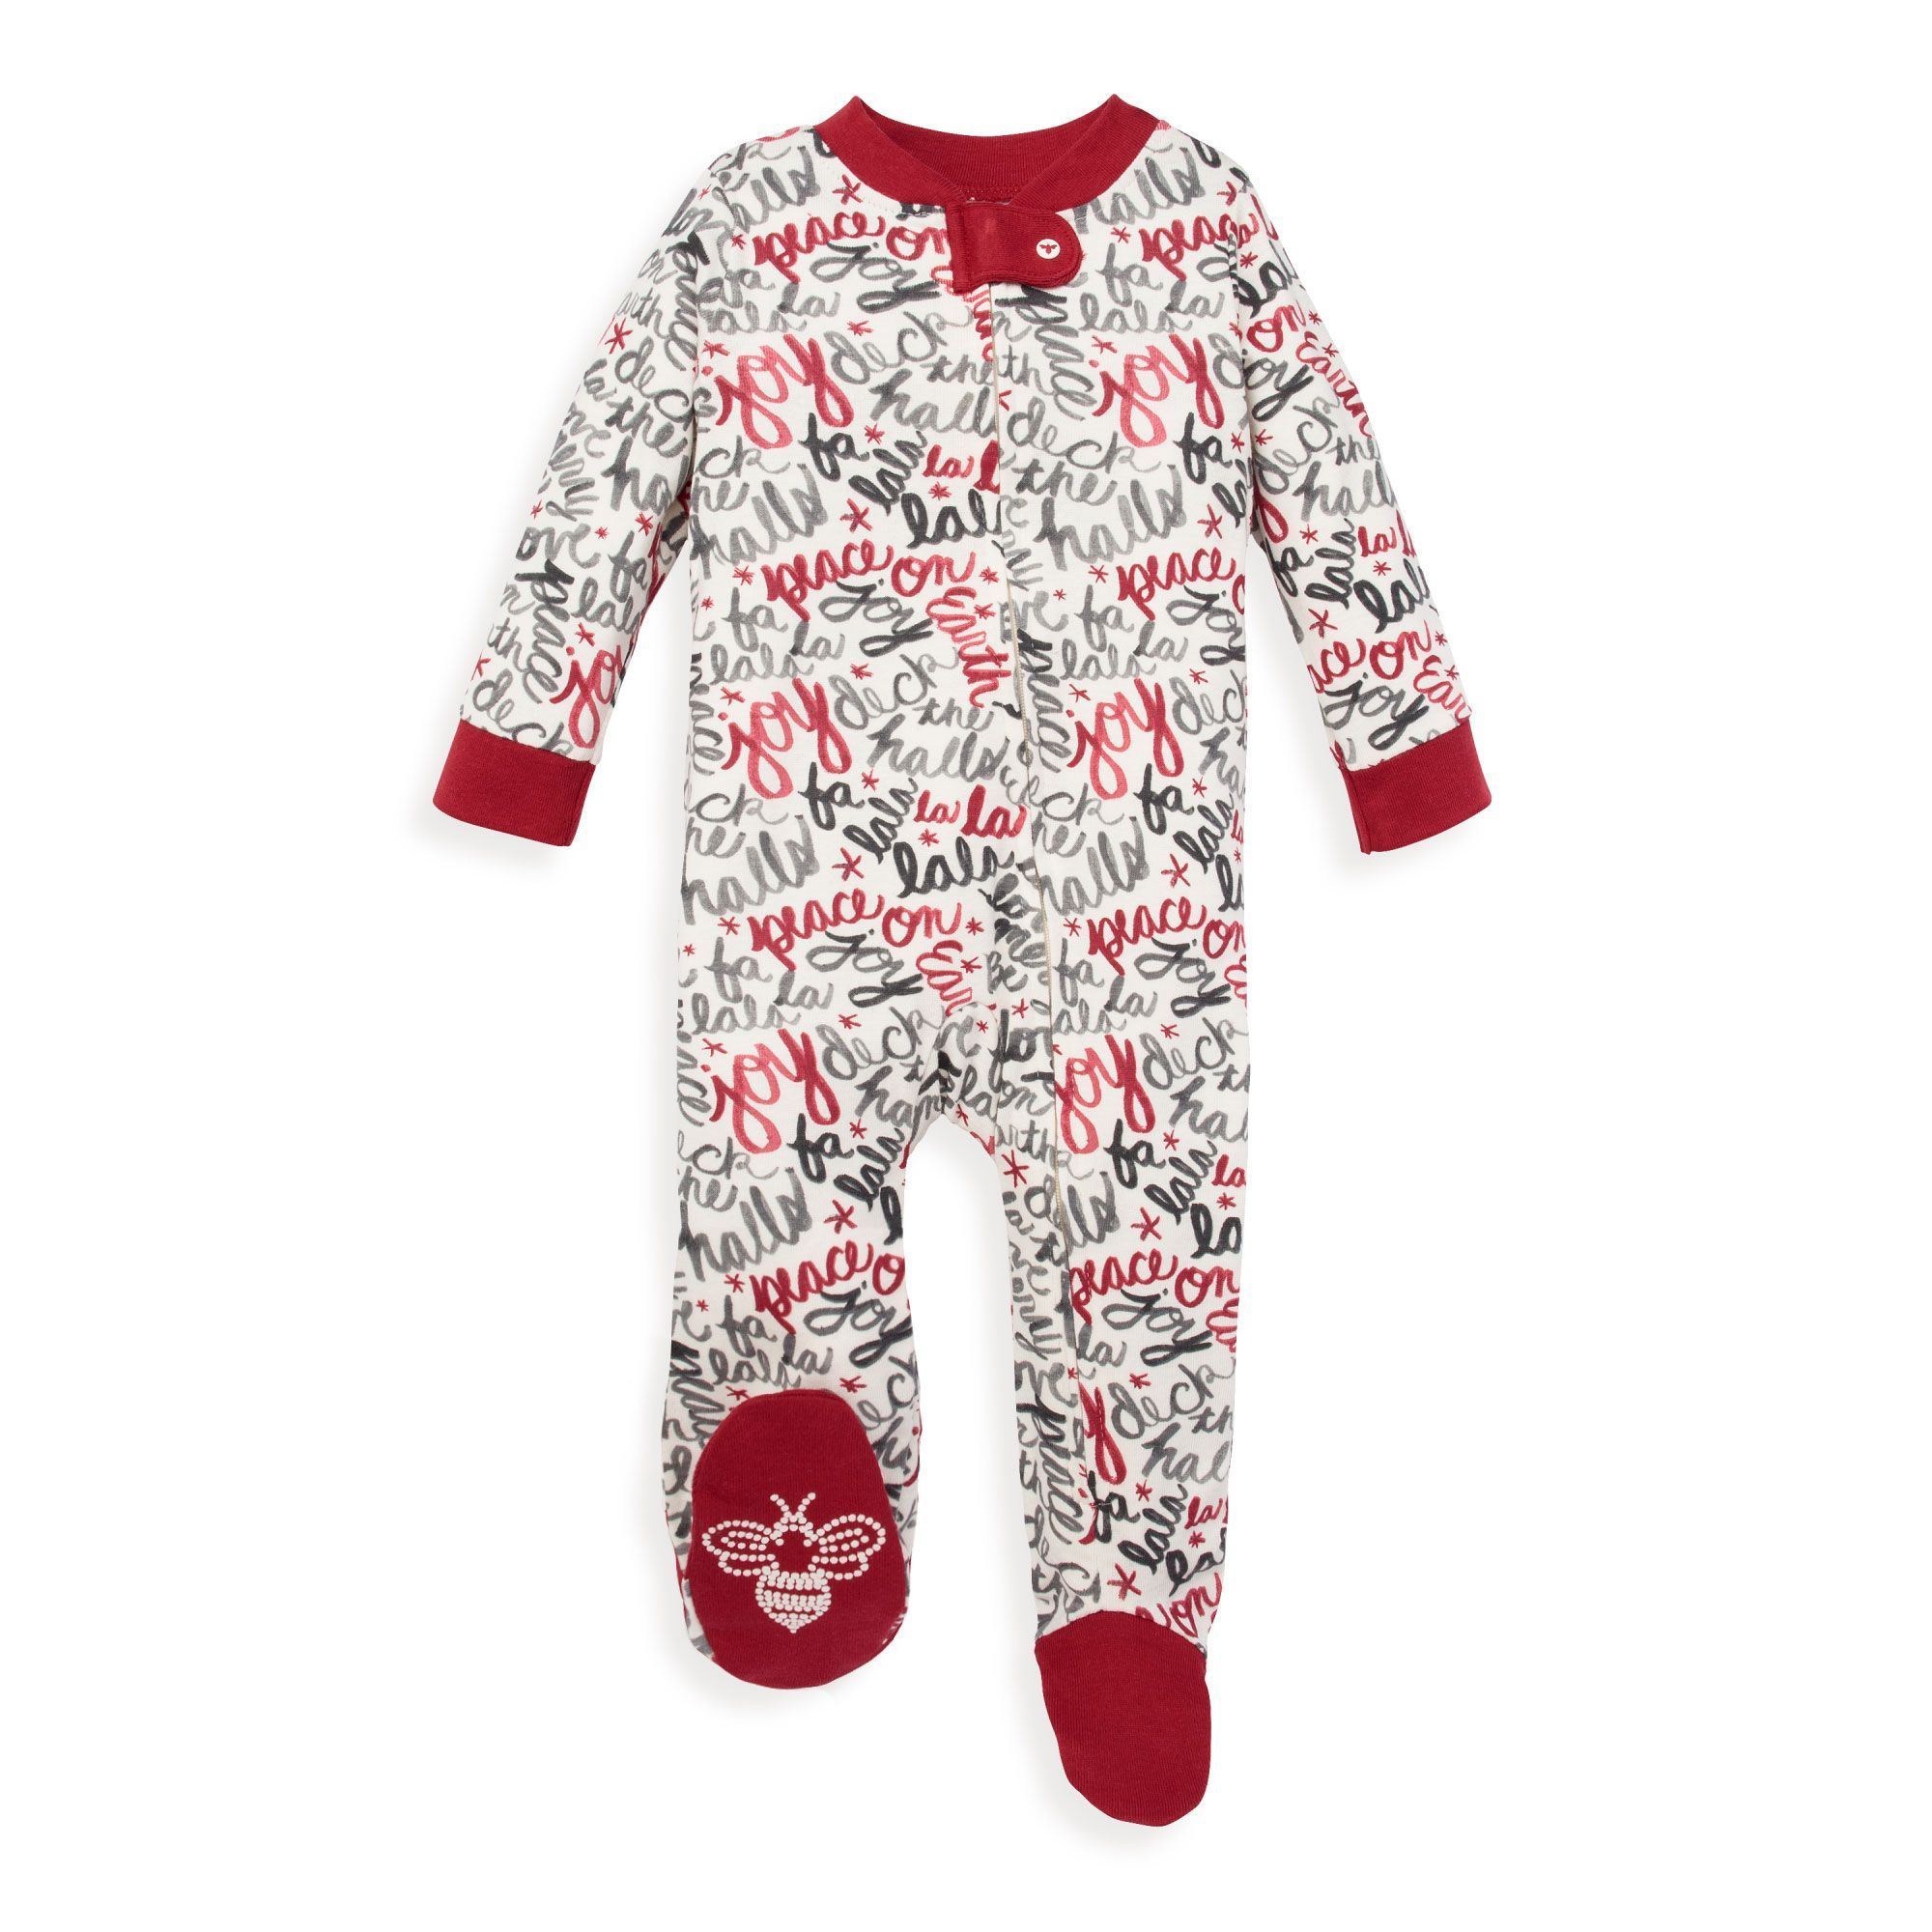 Family PJs Baby and Toddler One Piece Footed Unisex Holiday Pajamas